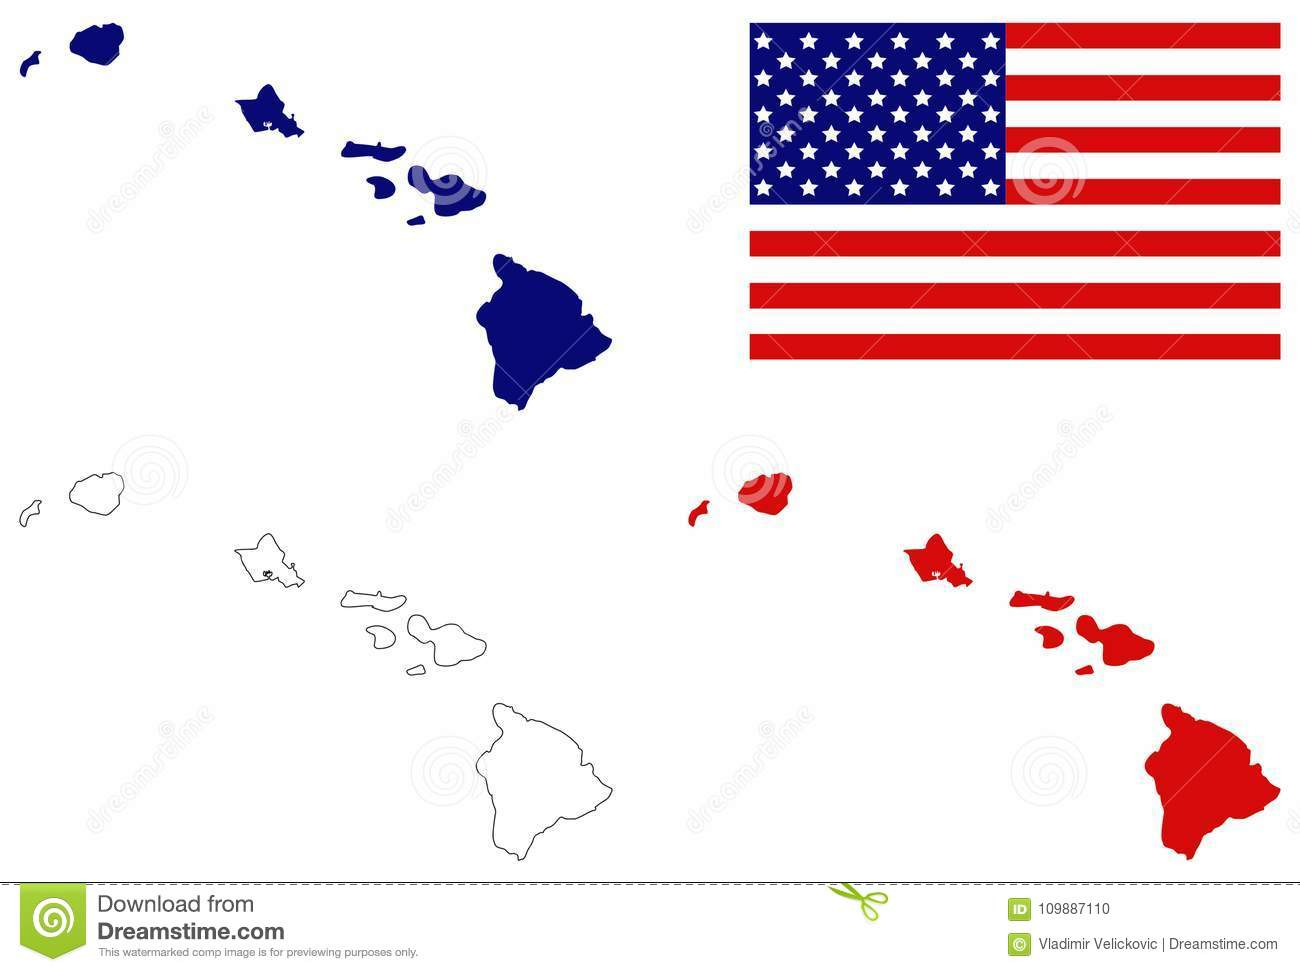 Hawaii Map With USA Flag - U.S. State Located In Oceania Stock ...